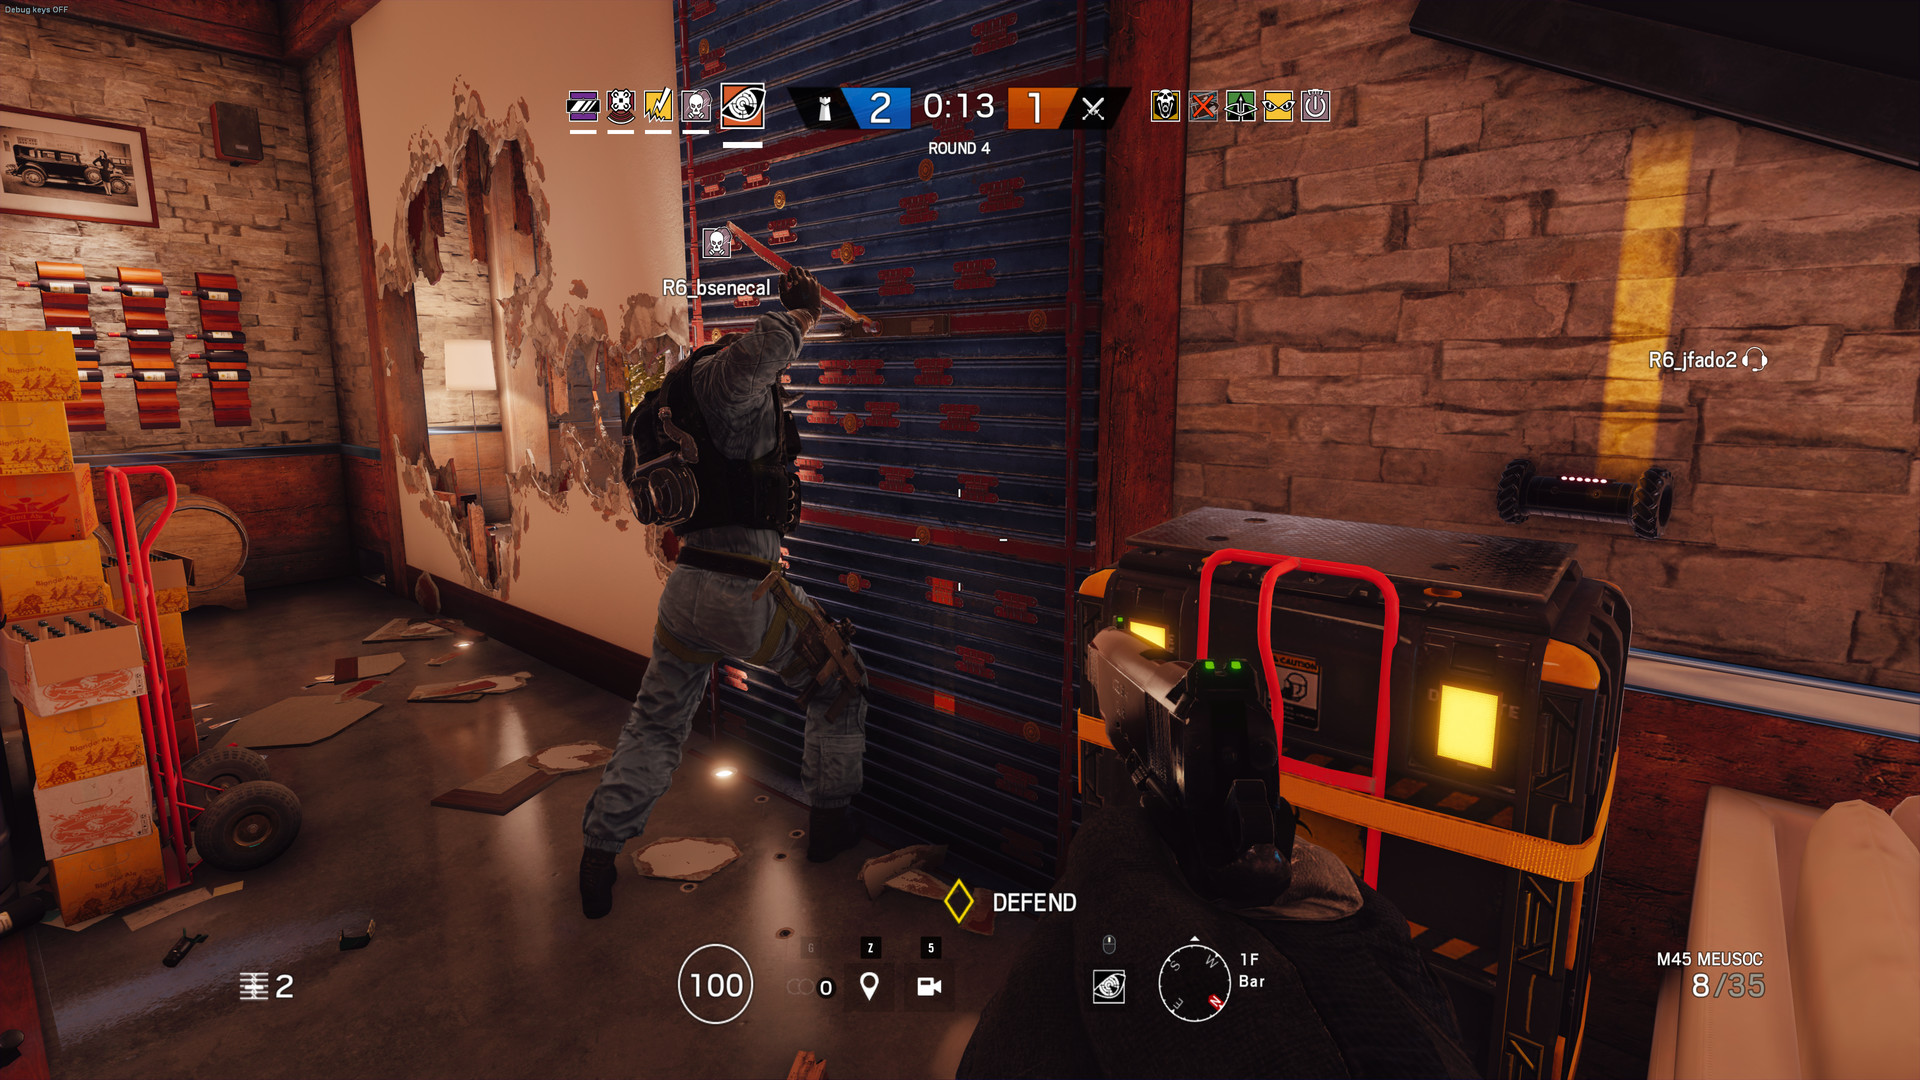 Rainbow Siege Siege Red Triangle - What Does It Mean